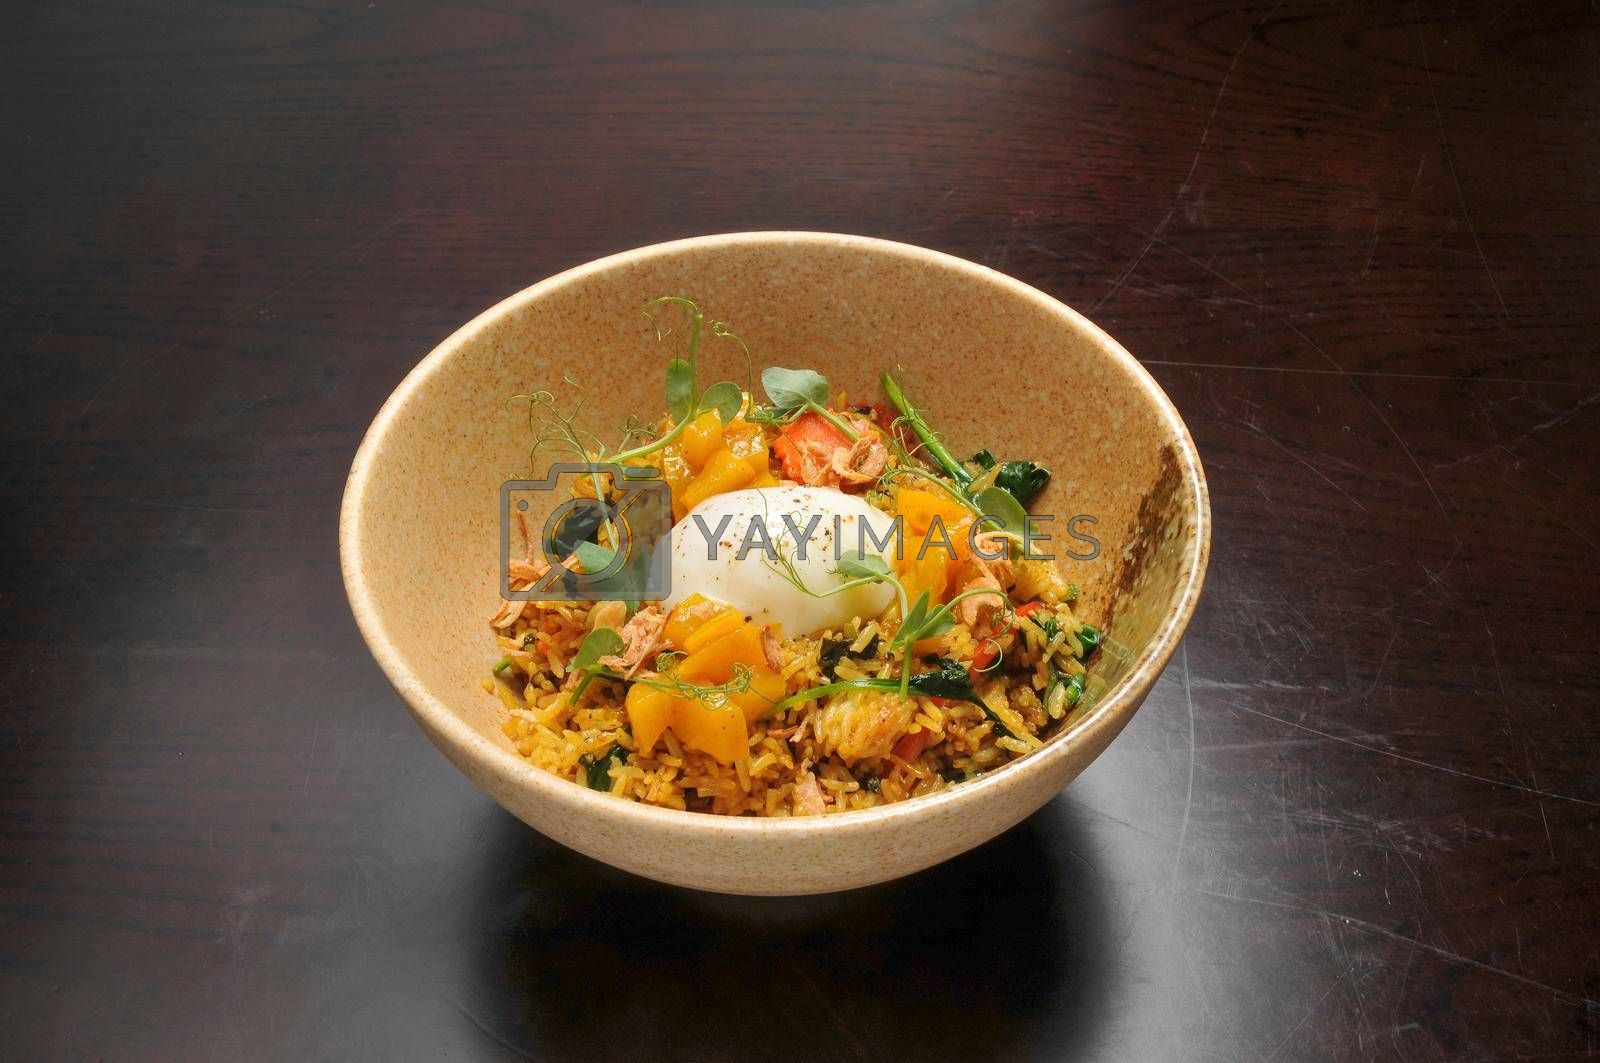 Authentic Asian food known as Jamaican Callaloo Fried Rice